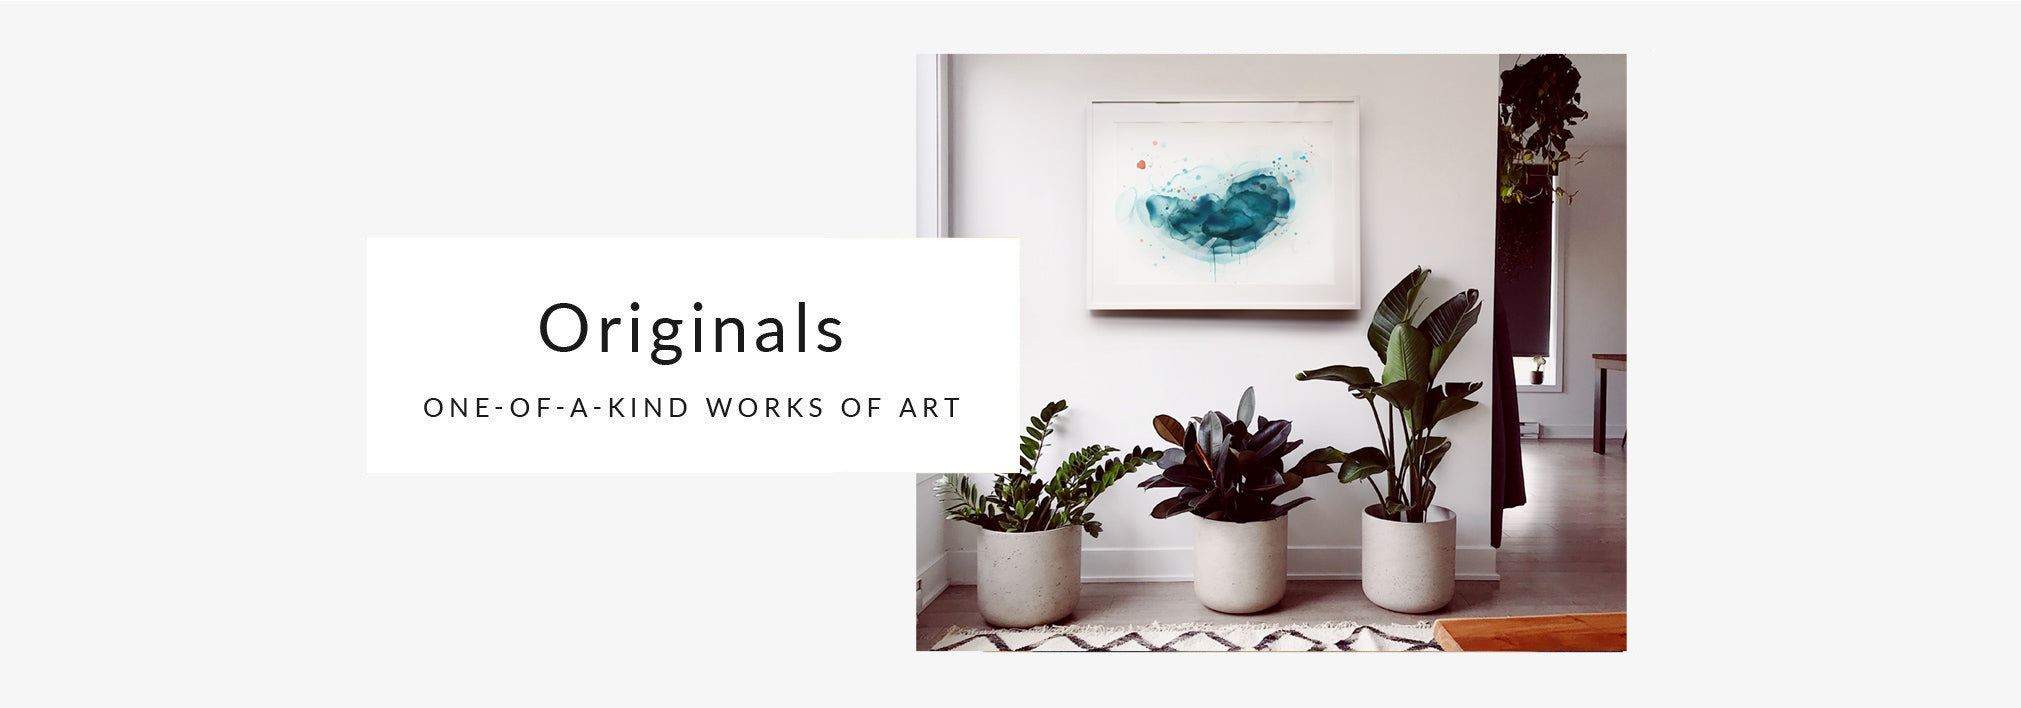 Originals: One-of-a-kind works of art for the modern home